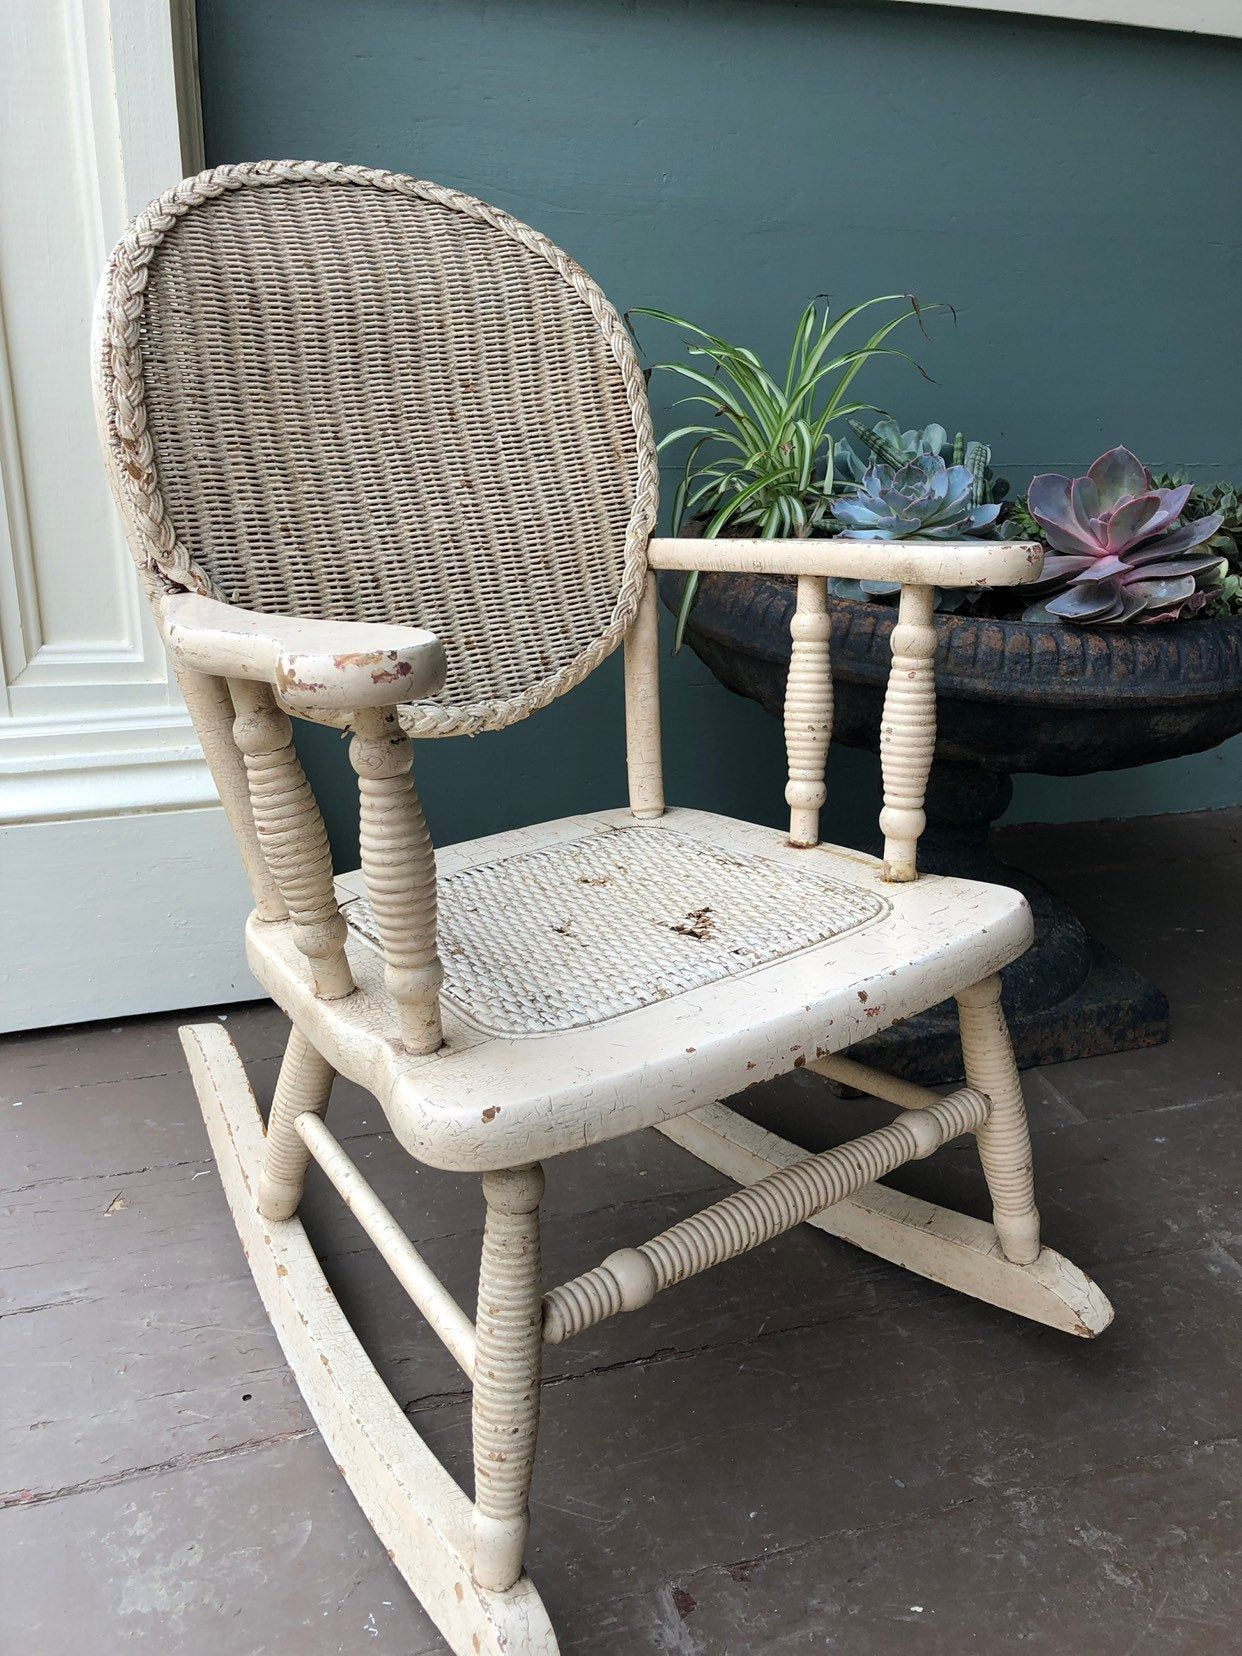 Antique Wood and Wicker Childs Rocking Chair,Turned